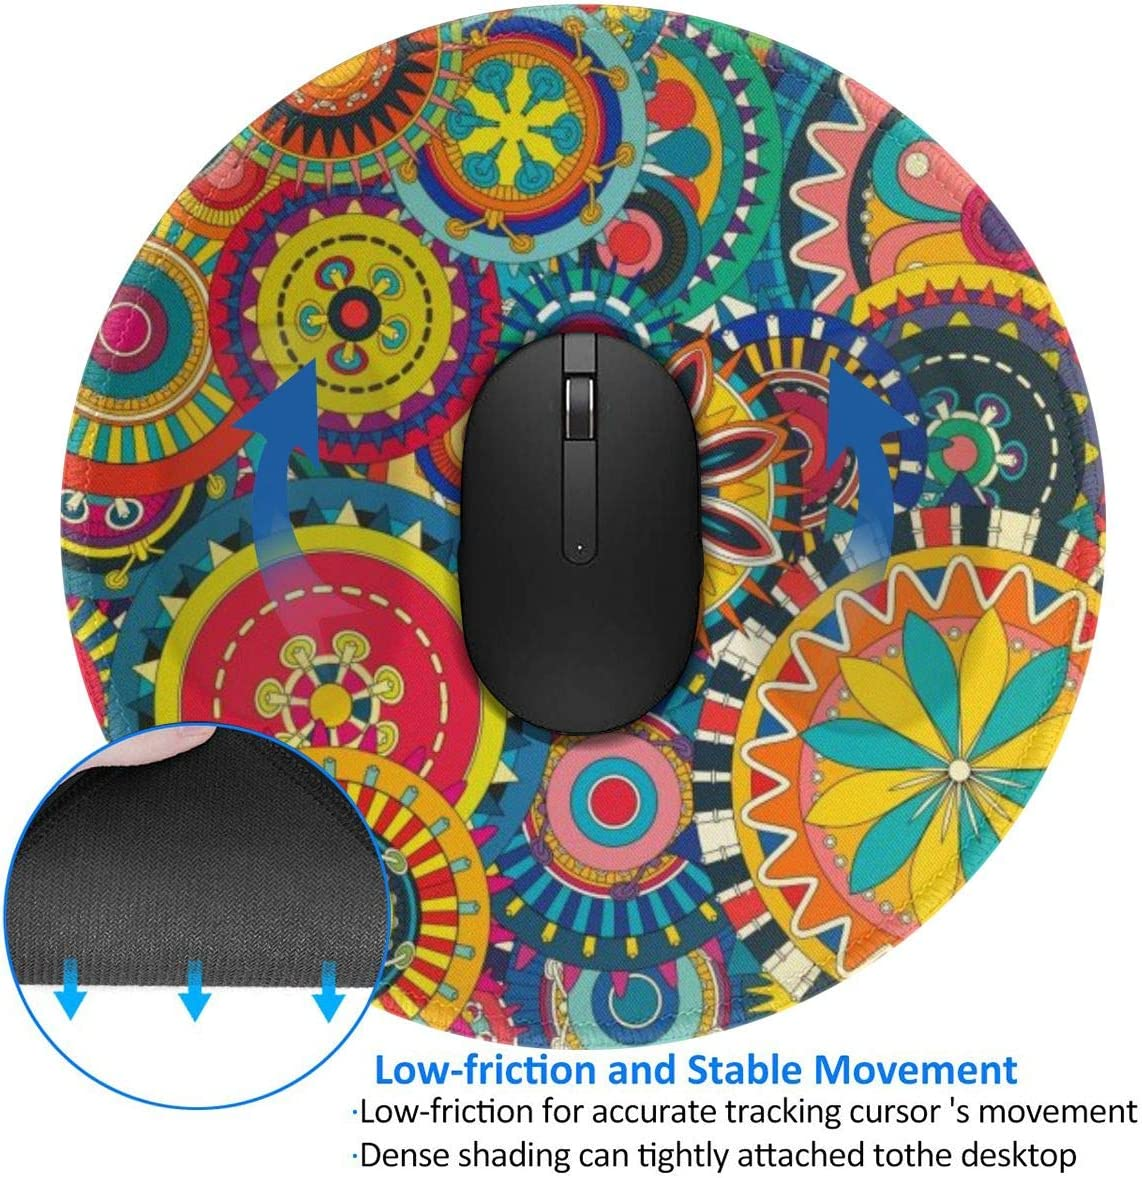 Boho Paisley Design Pattern Round Mouse Pad Desk Pad Non-Slip Rubber Mice Pads Stitched Edges Cute Round Mouse Pad for Office and Home